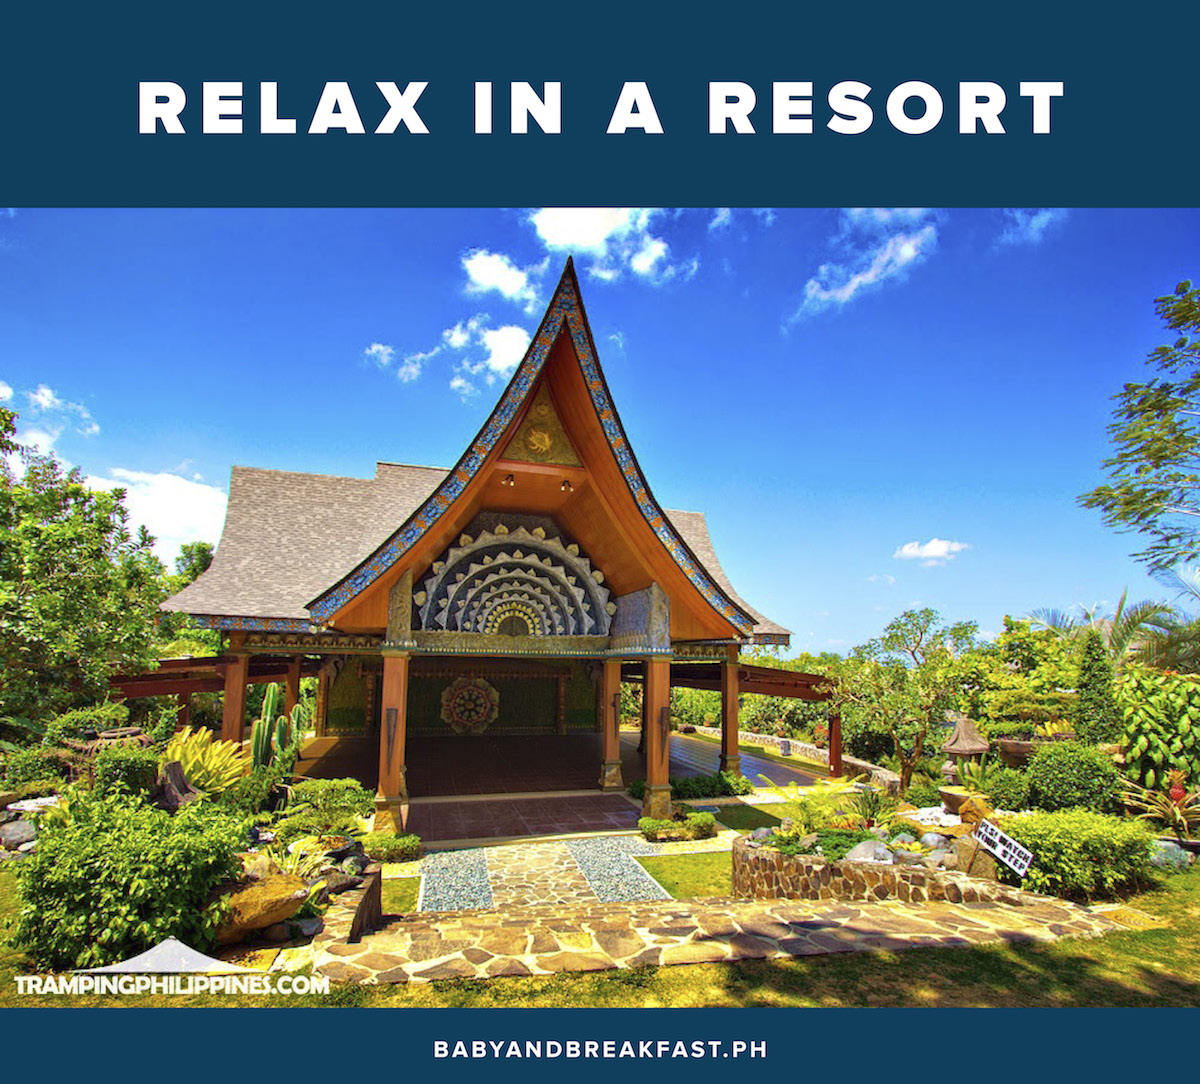 Relax in a resort